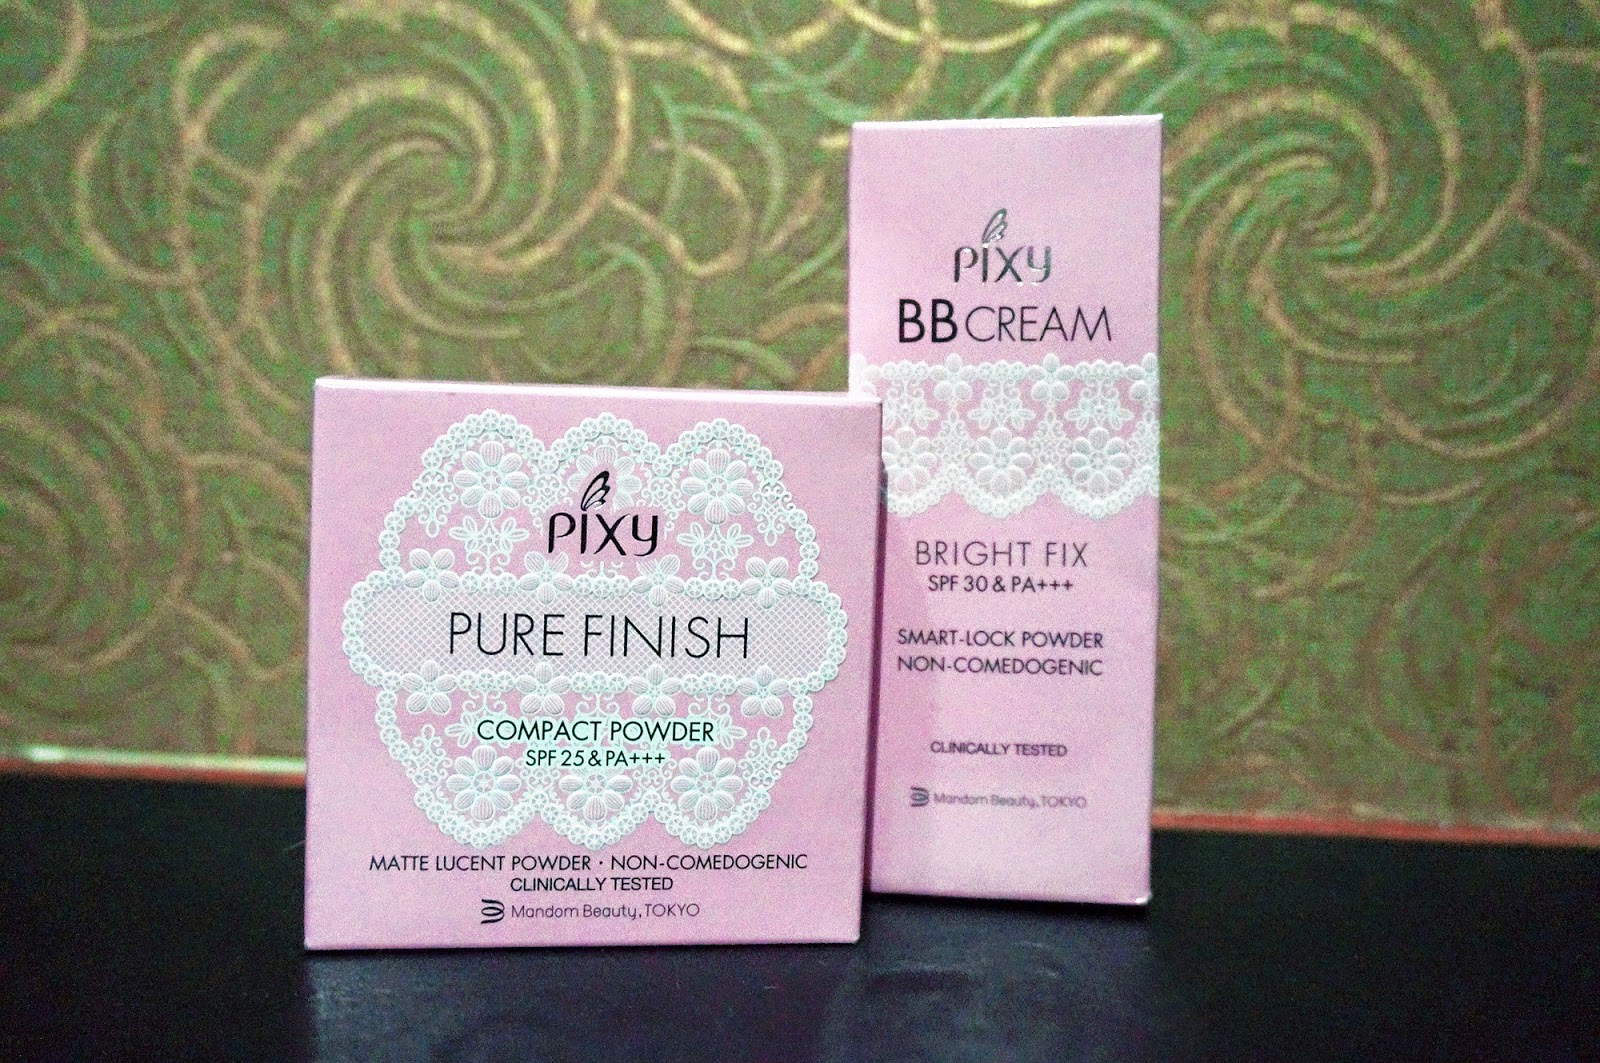 Pixy Compact Powder 12 Hours With Stella Lee Indonesia Beauty And Travel I Use Bright Fix Bb Cream